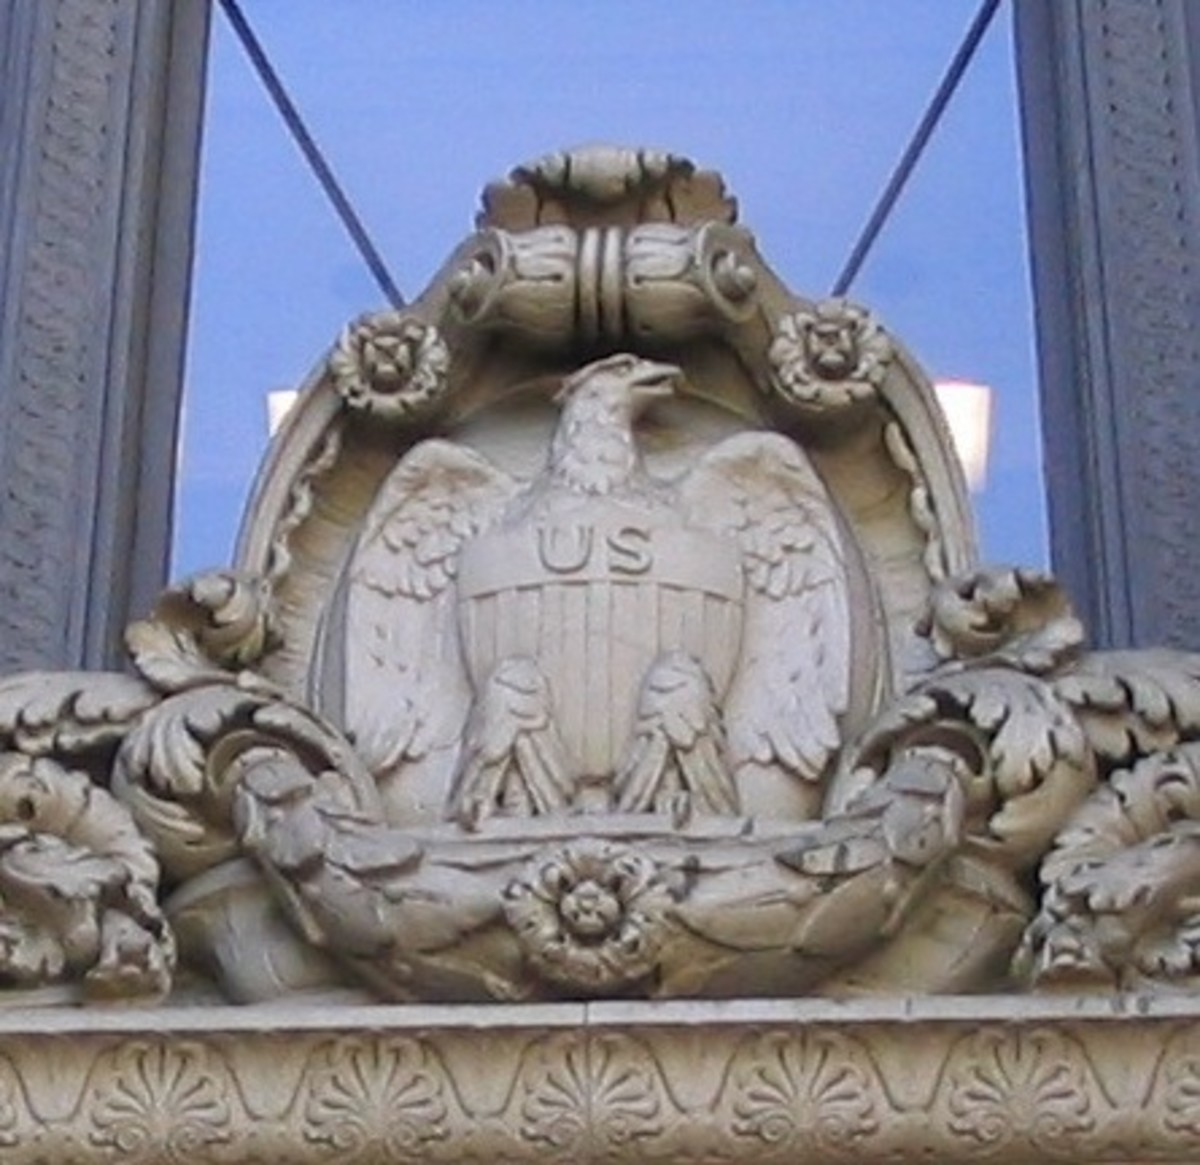 Eagle on U.S. Bank Building